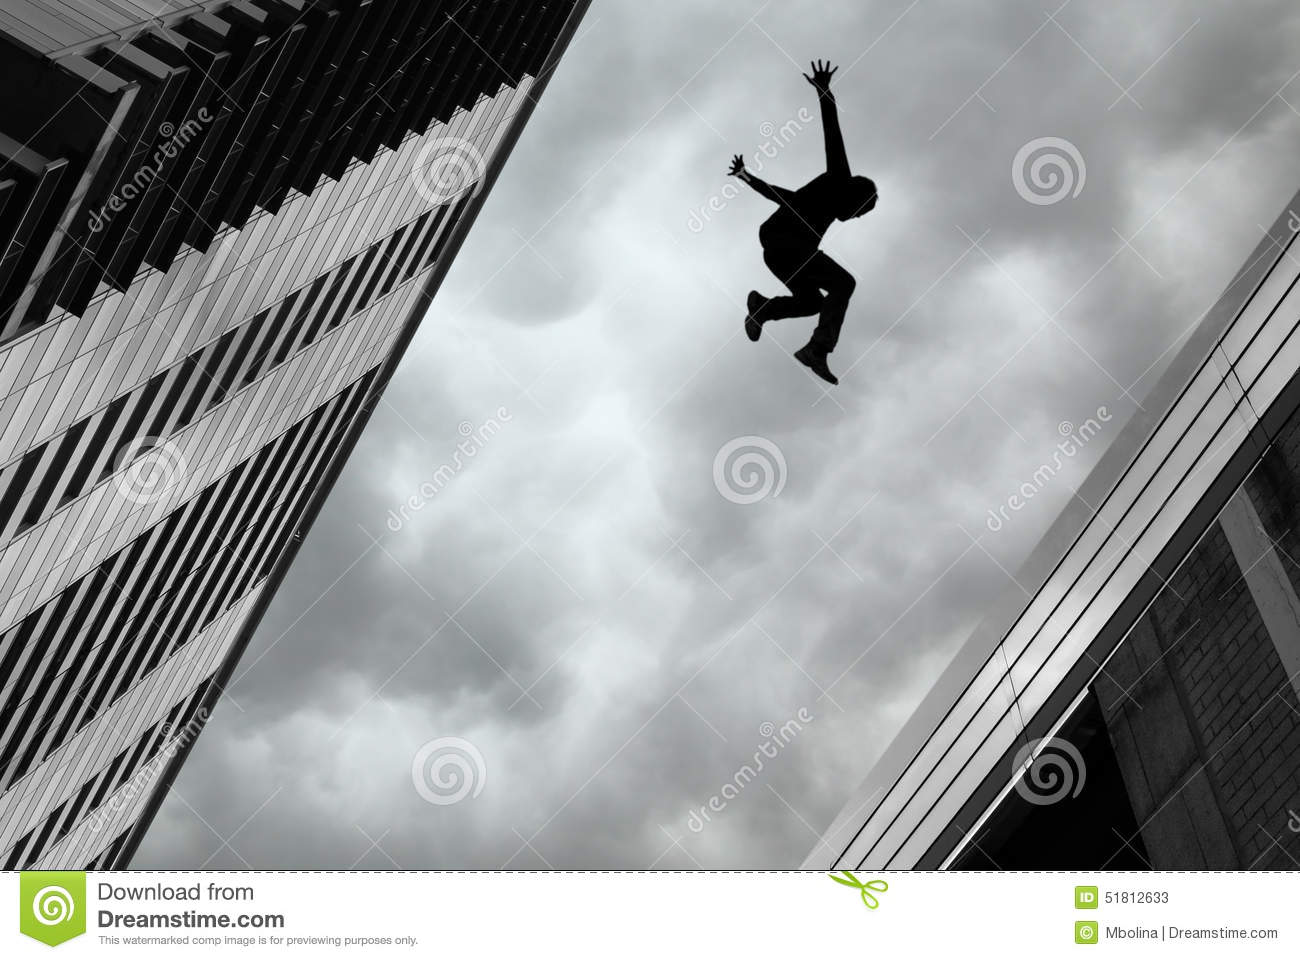 Man Jumping Off Building Stock Photo Image 51812633